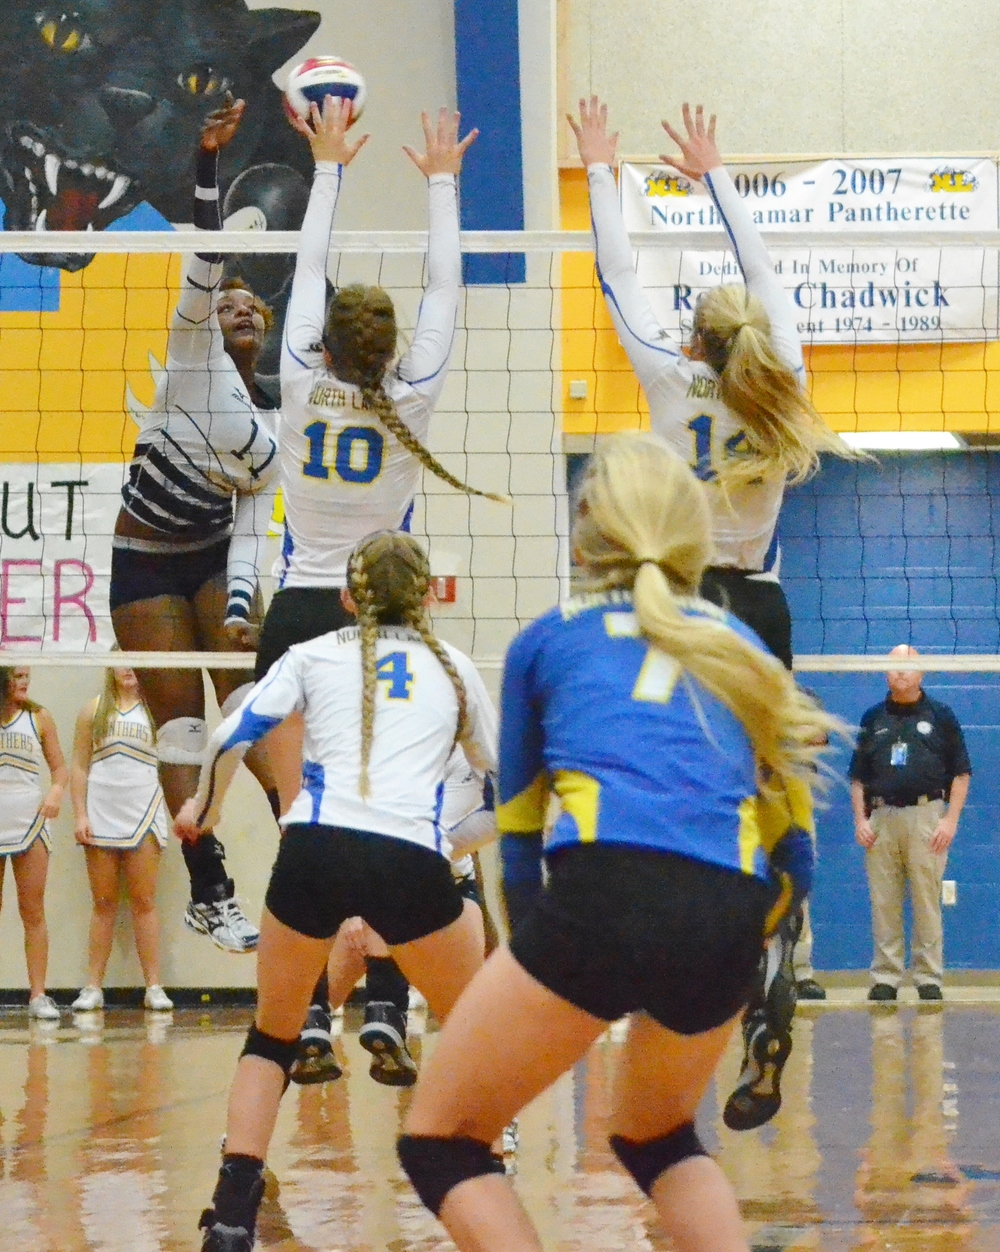 (Photo by Beverly White) Bailee Nickerson (10) and Bailey Foy (14) going for up a block for the Pantherettes against Paris High.